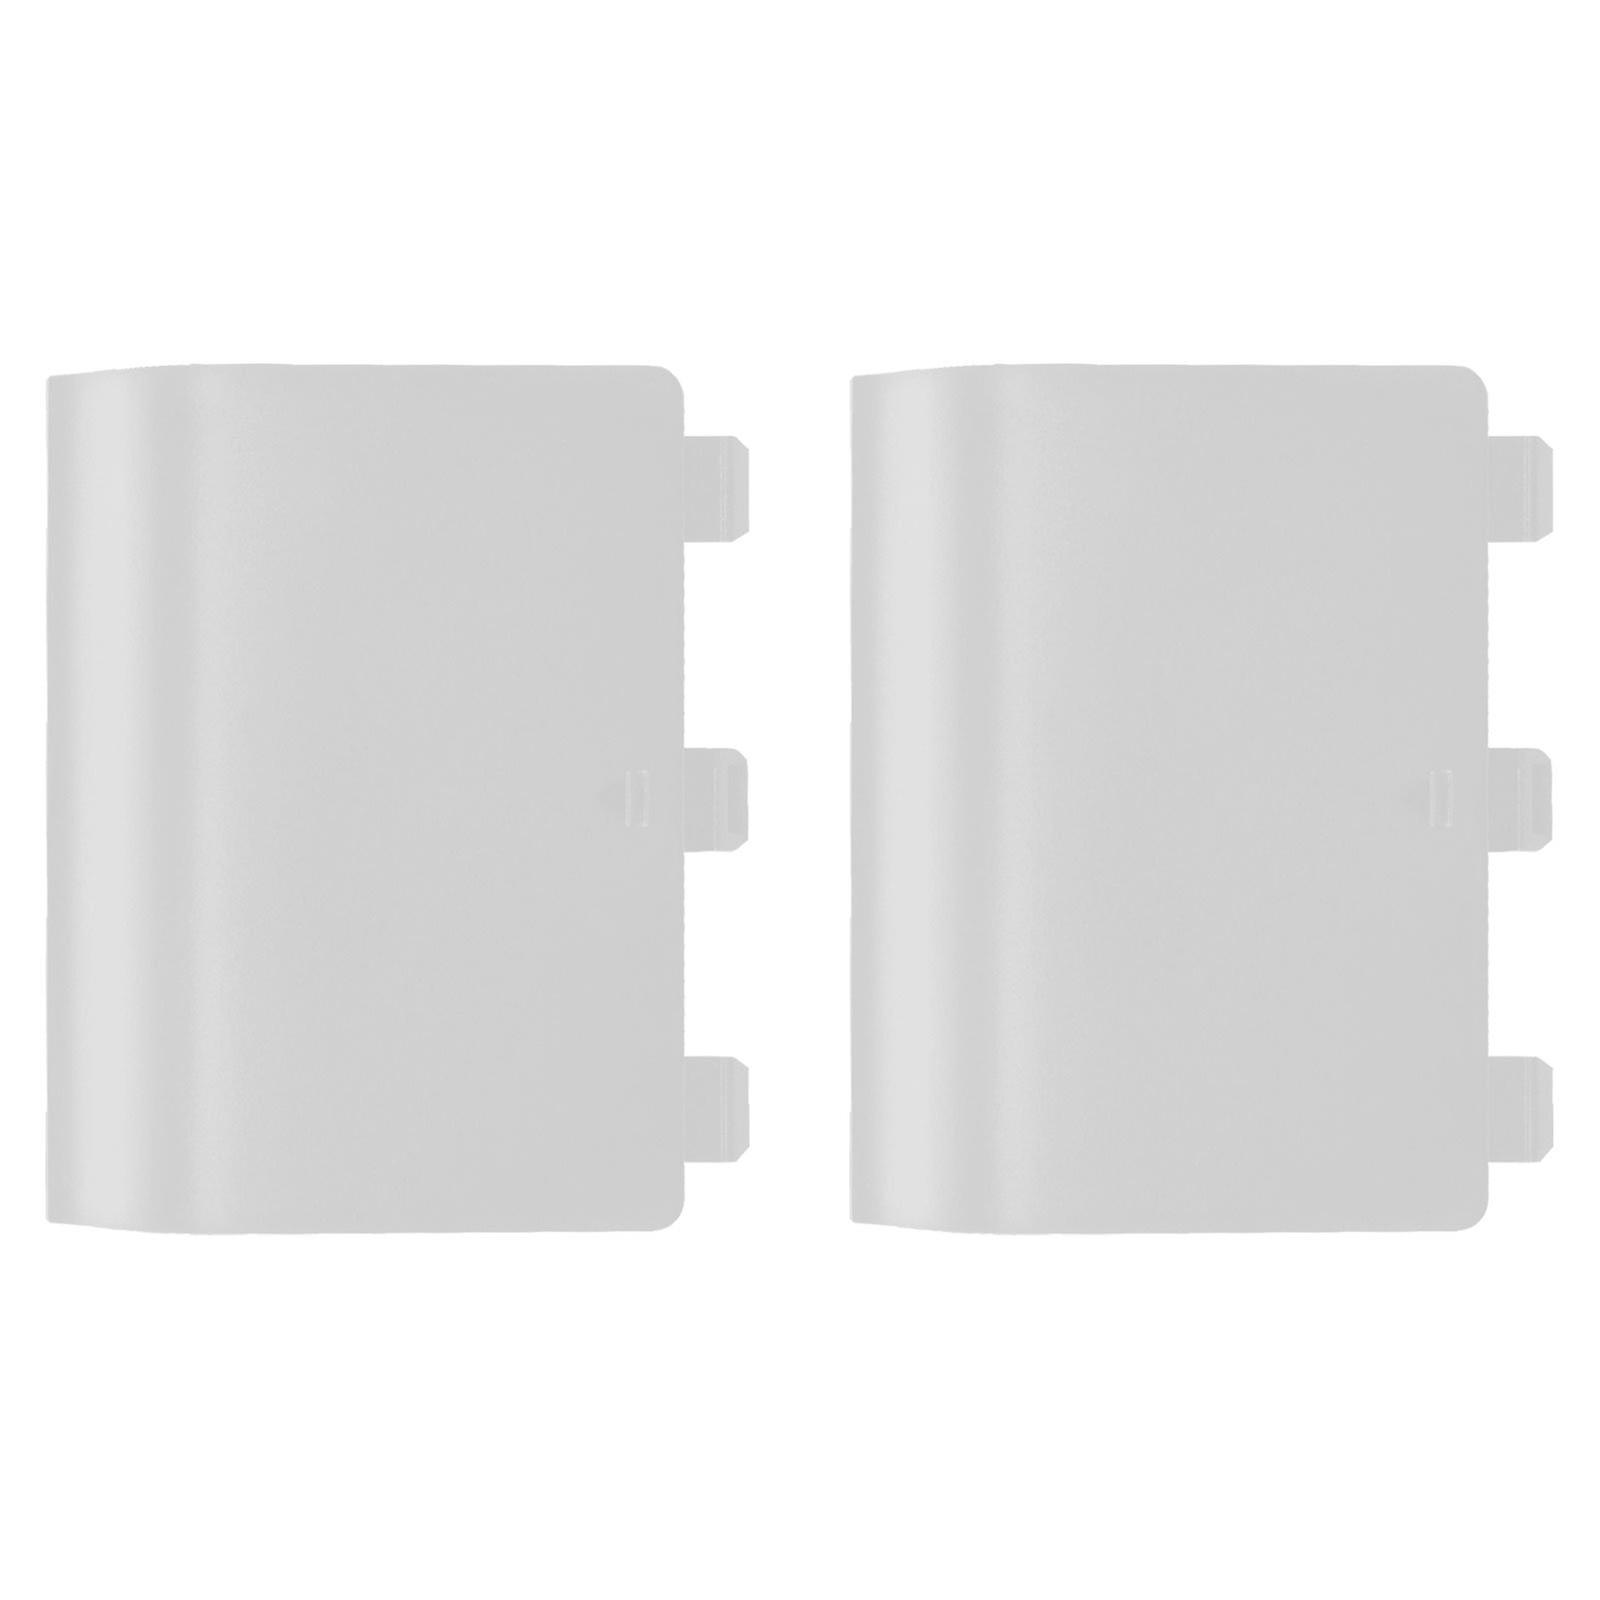 Replacement battery back cover holder for white microsoft xbox one controllers & 2 pack white